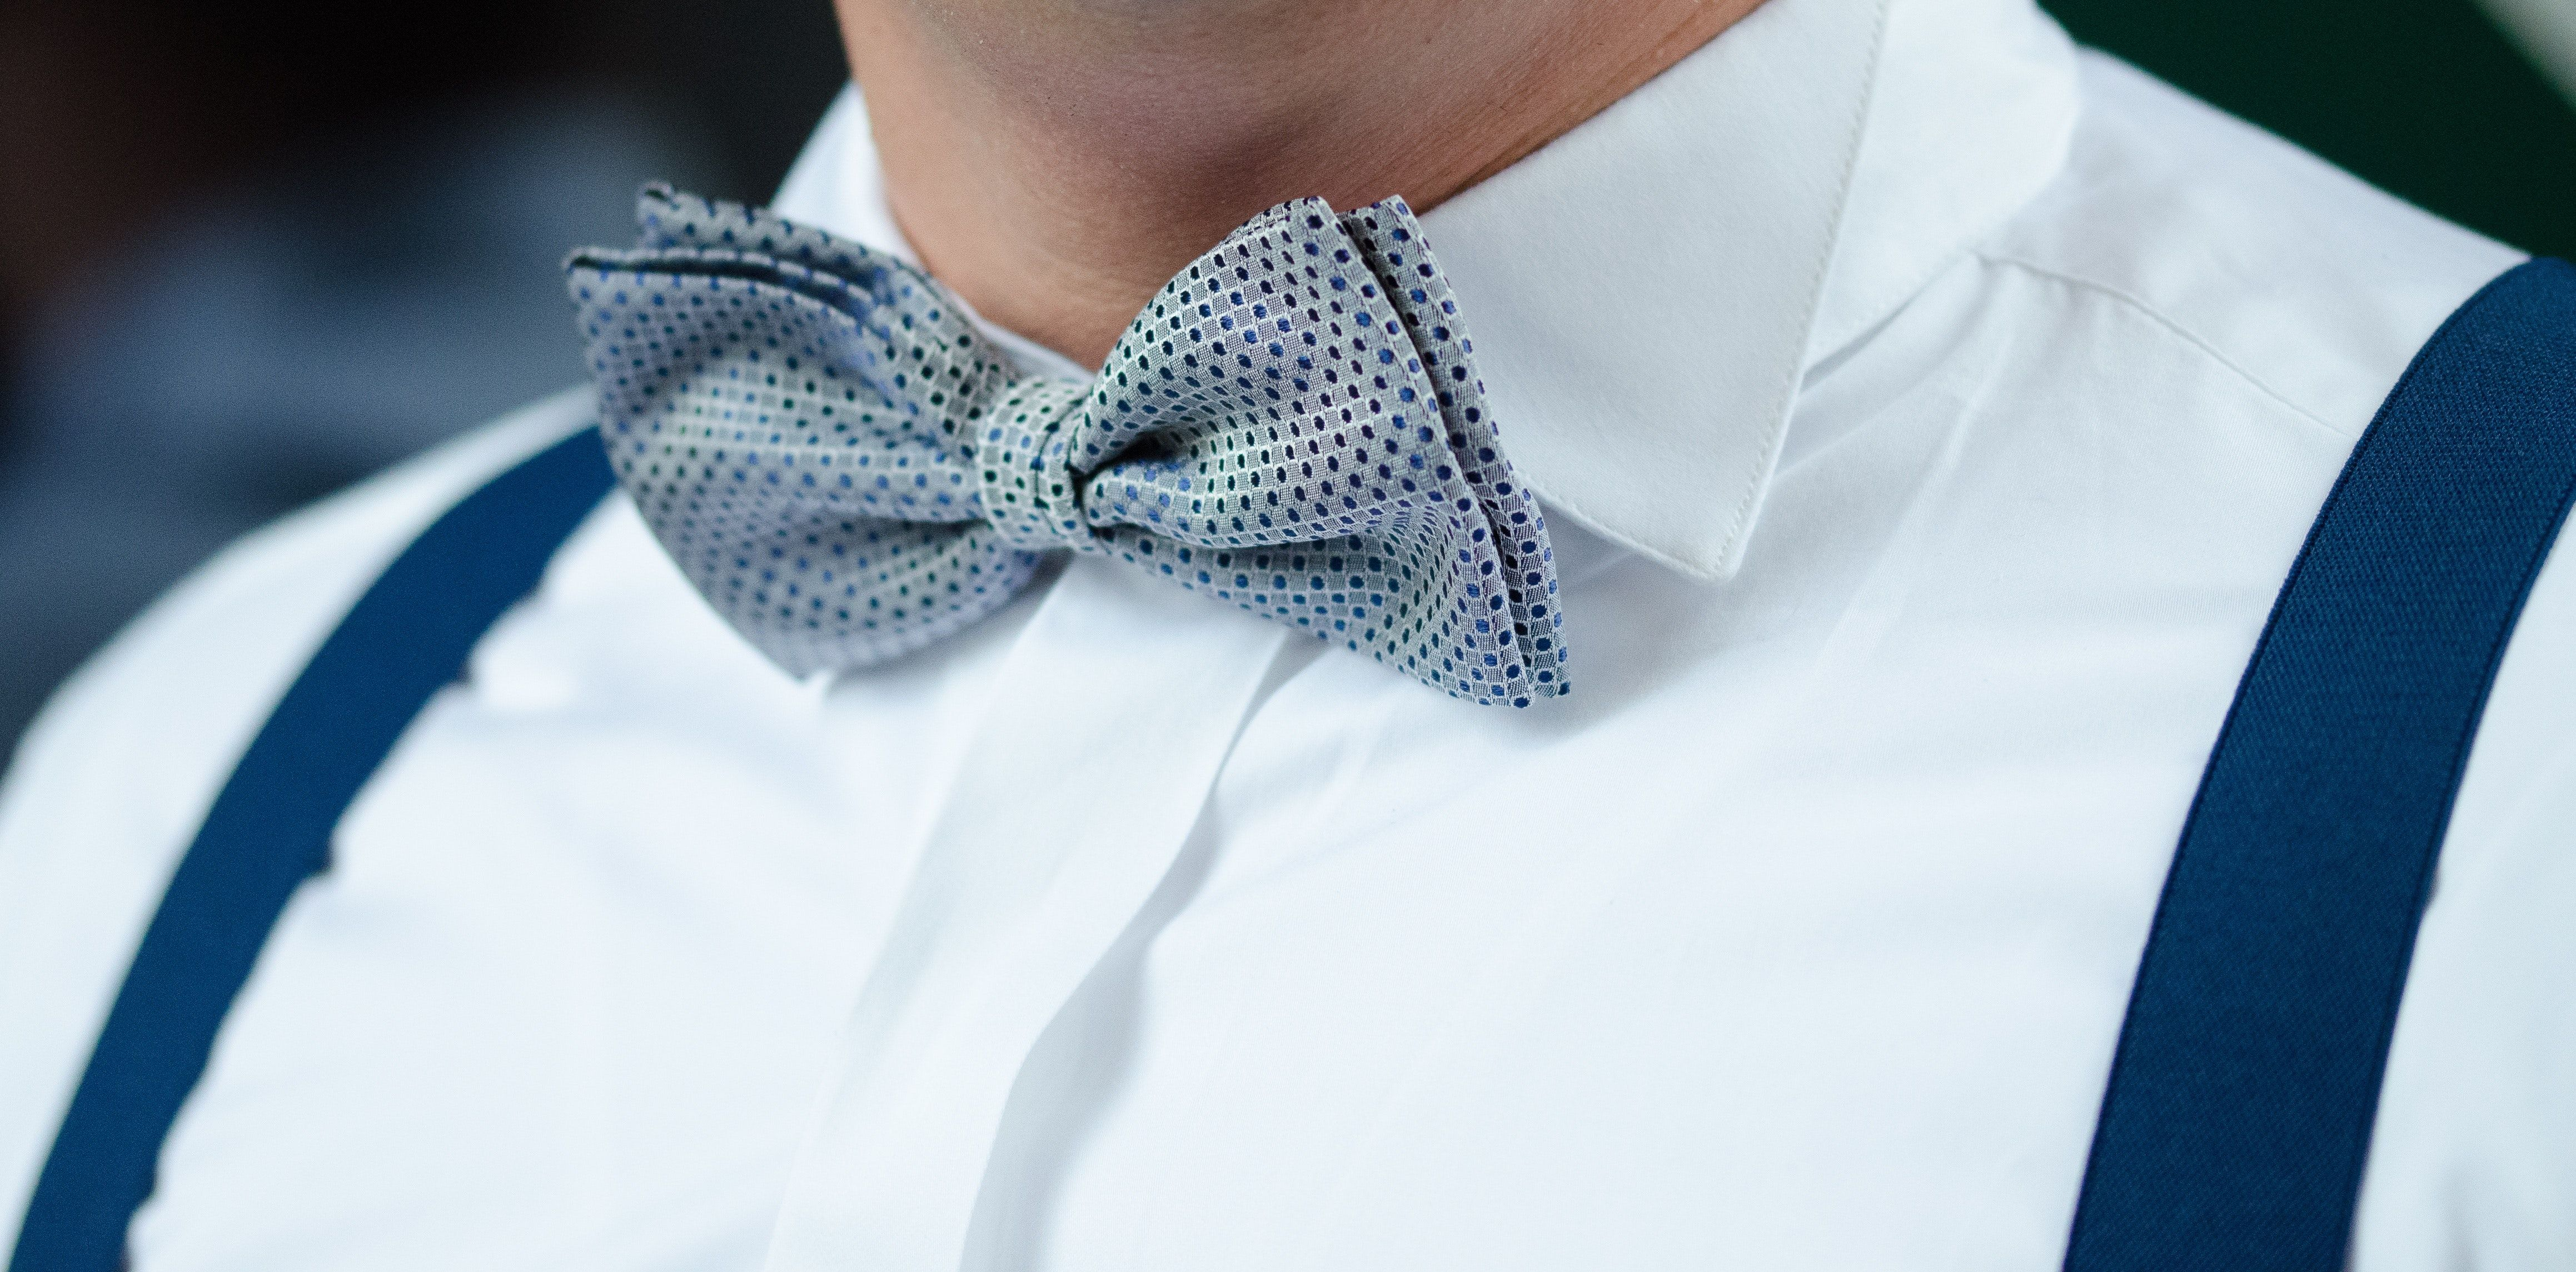 4635x2289 Man in White Dress Shirt Blue Suspenders and Gray Polka ...